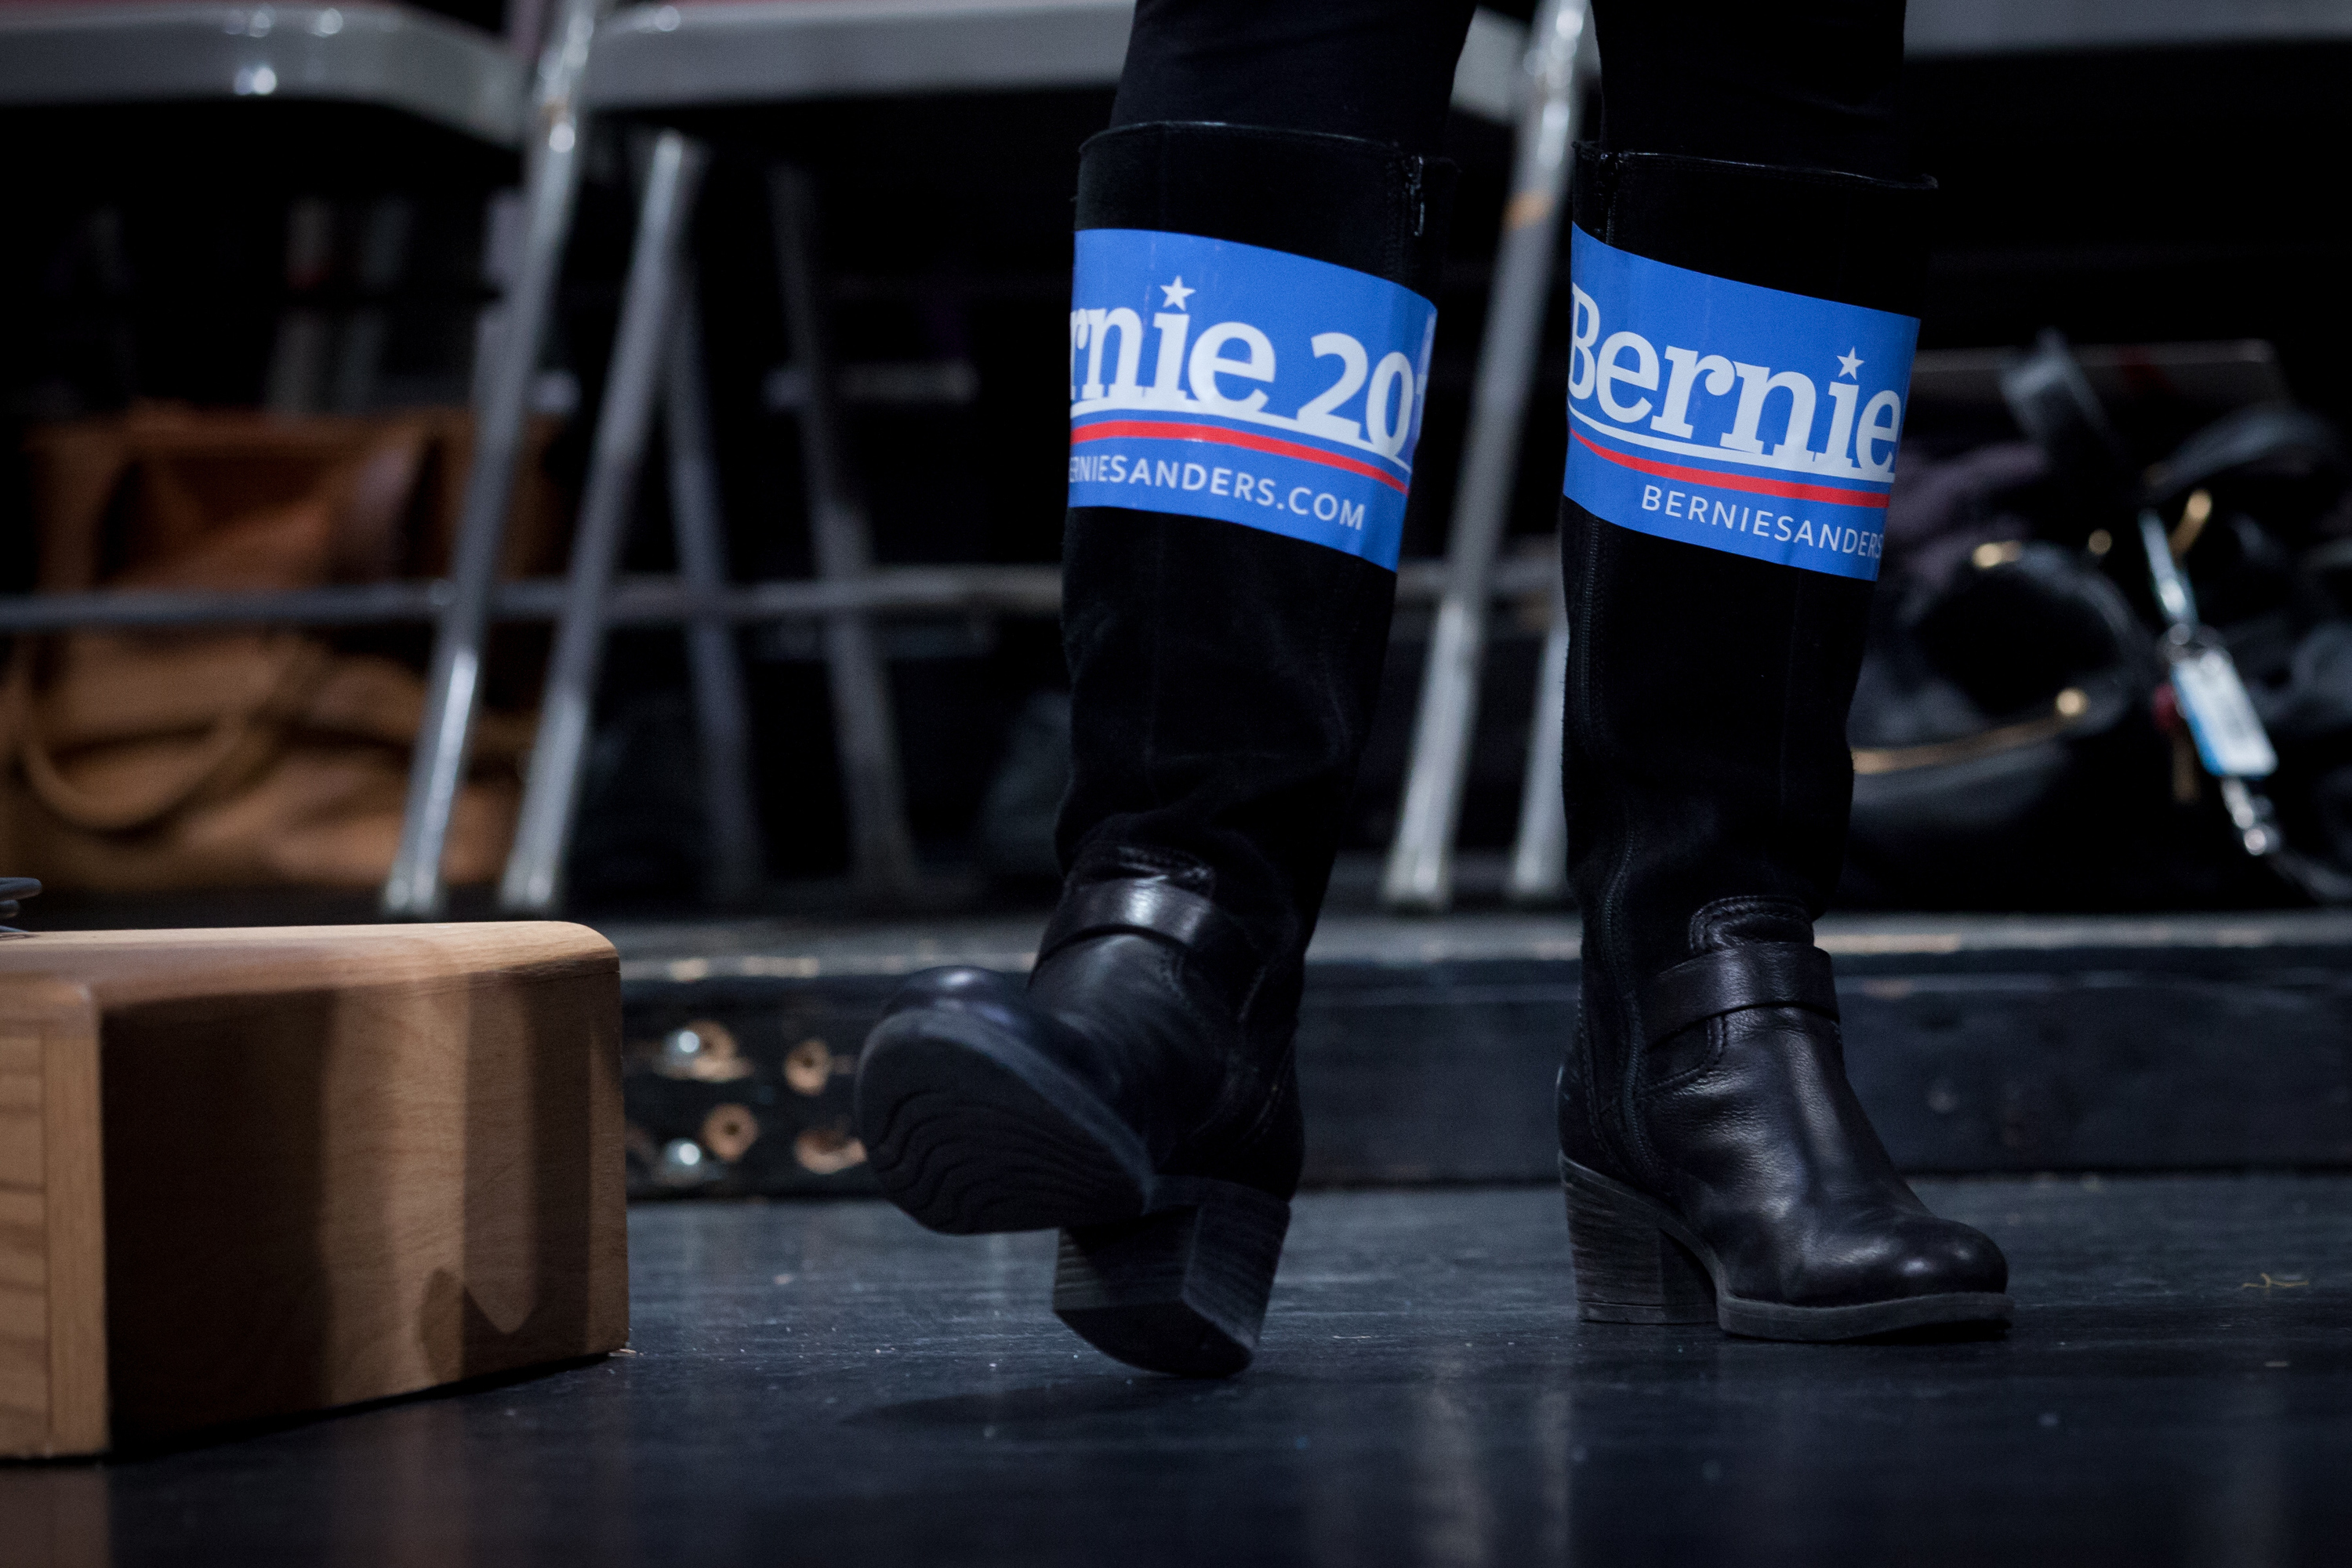 bernie sandals memes are the best thing to come out of new